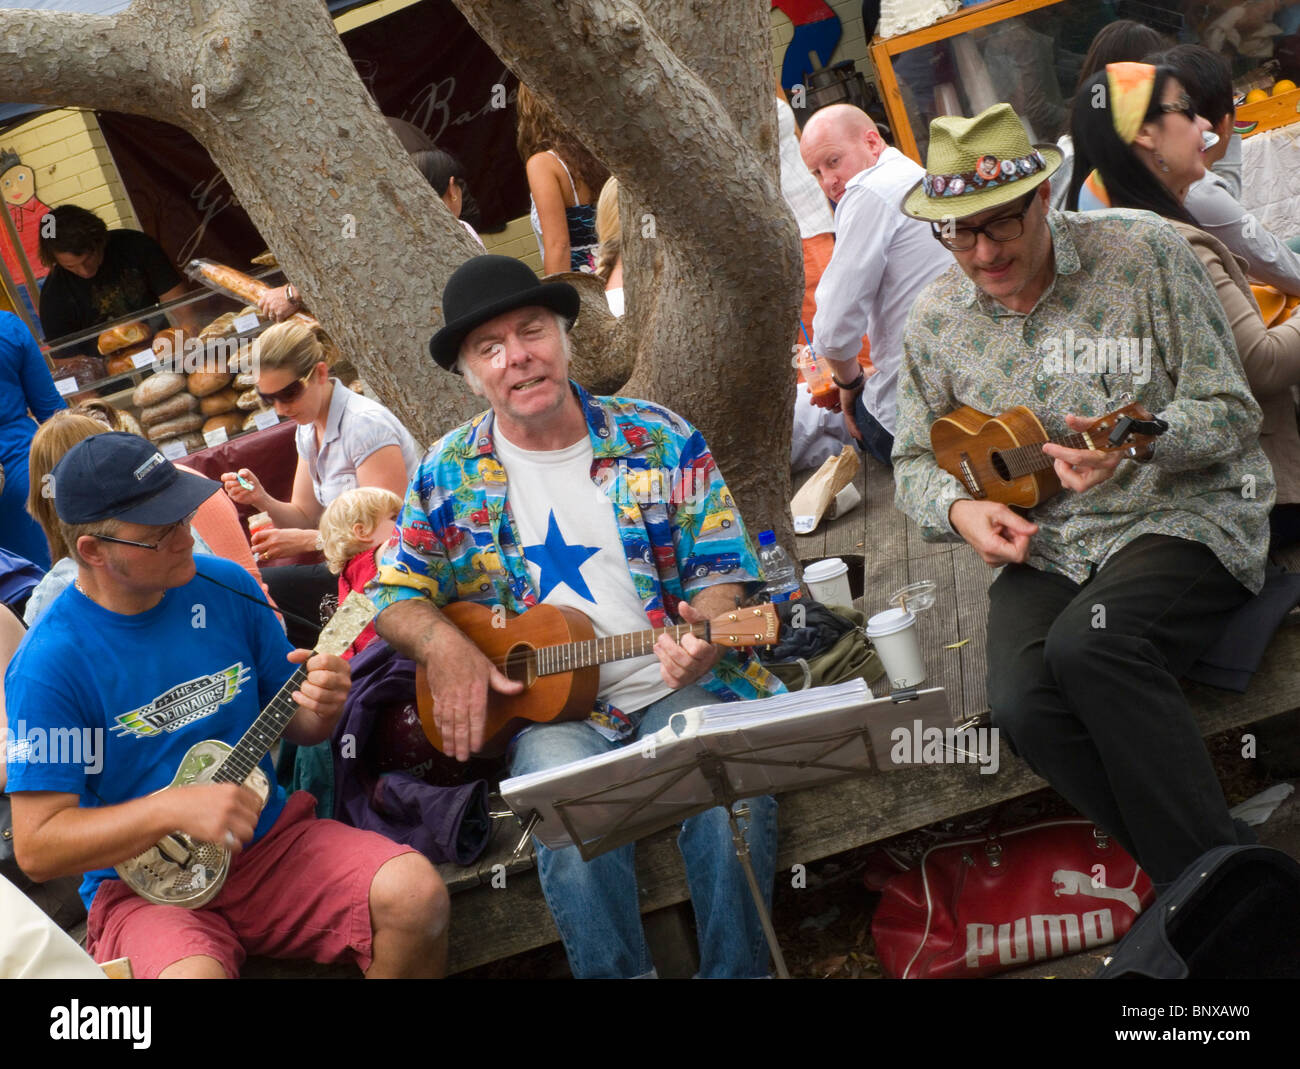 Busking musicians at the Paddington Markets. Sydney, New South Wales, AUSTRALIA - Stock Image